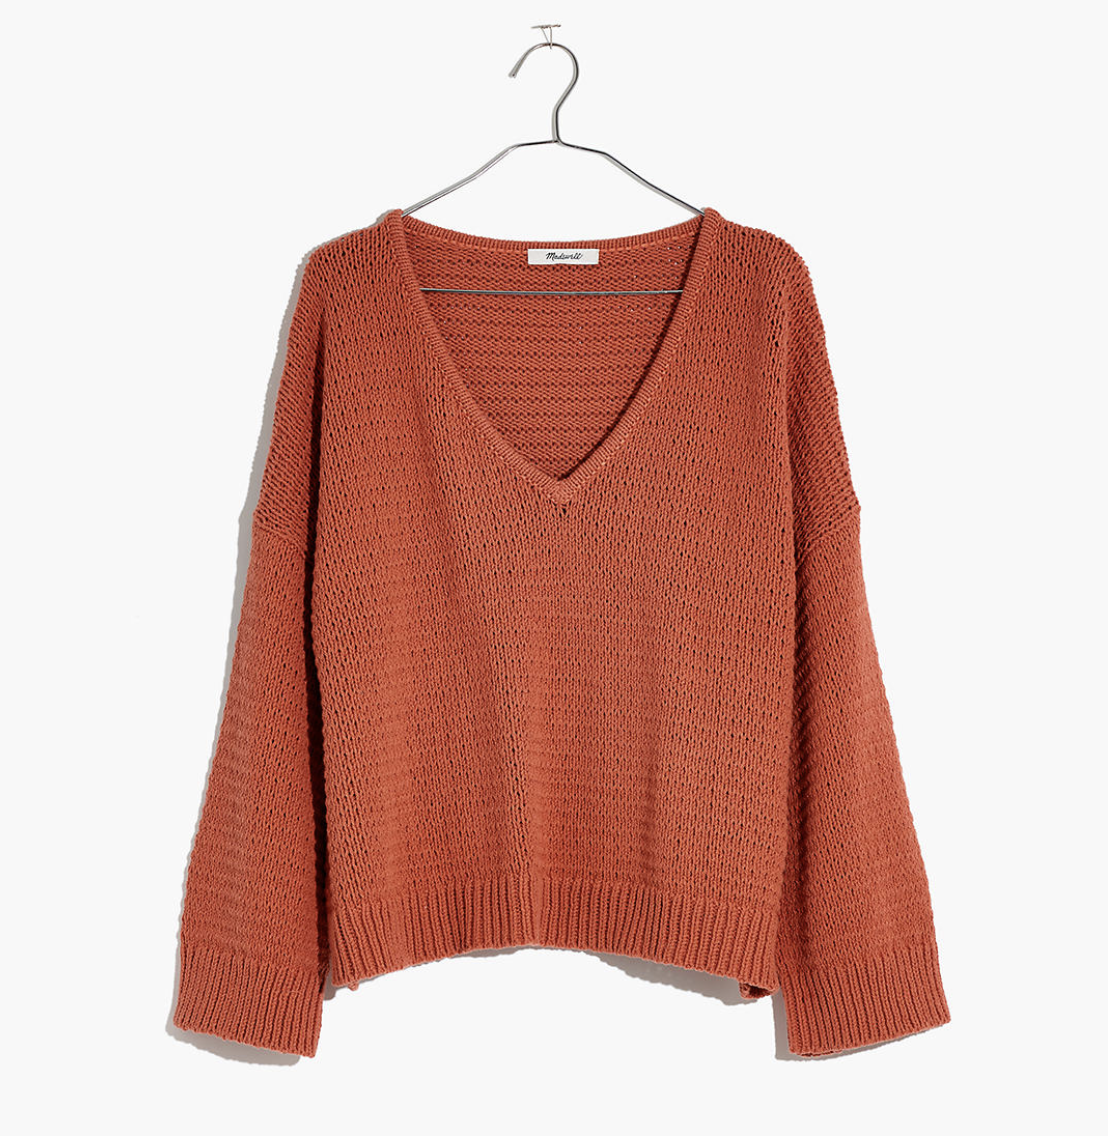 Photo courtesy of Madewell   Madewell Breezeway Pullover Sweater - $69.50